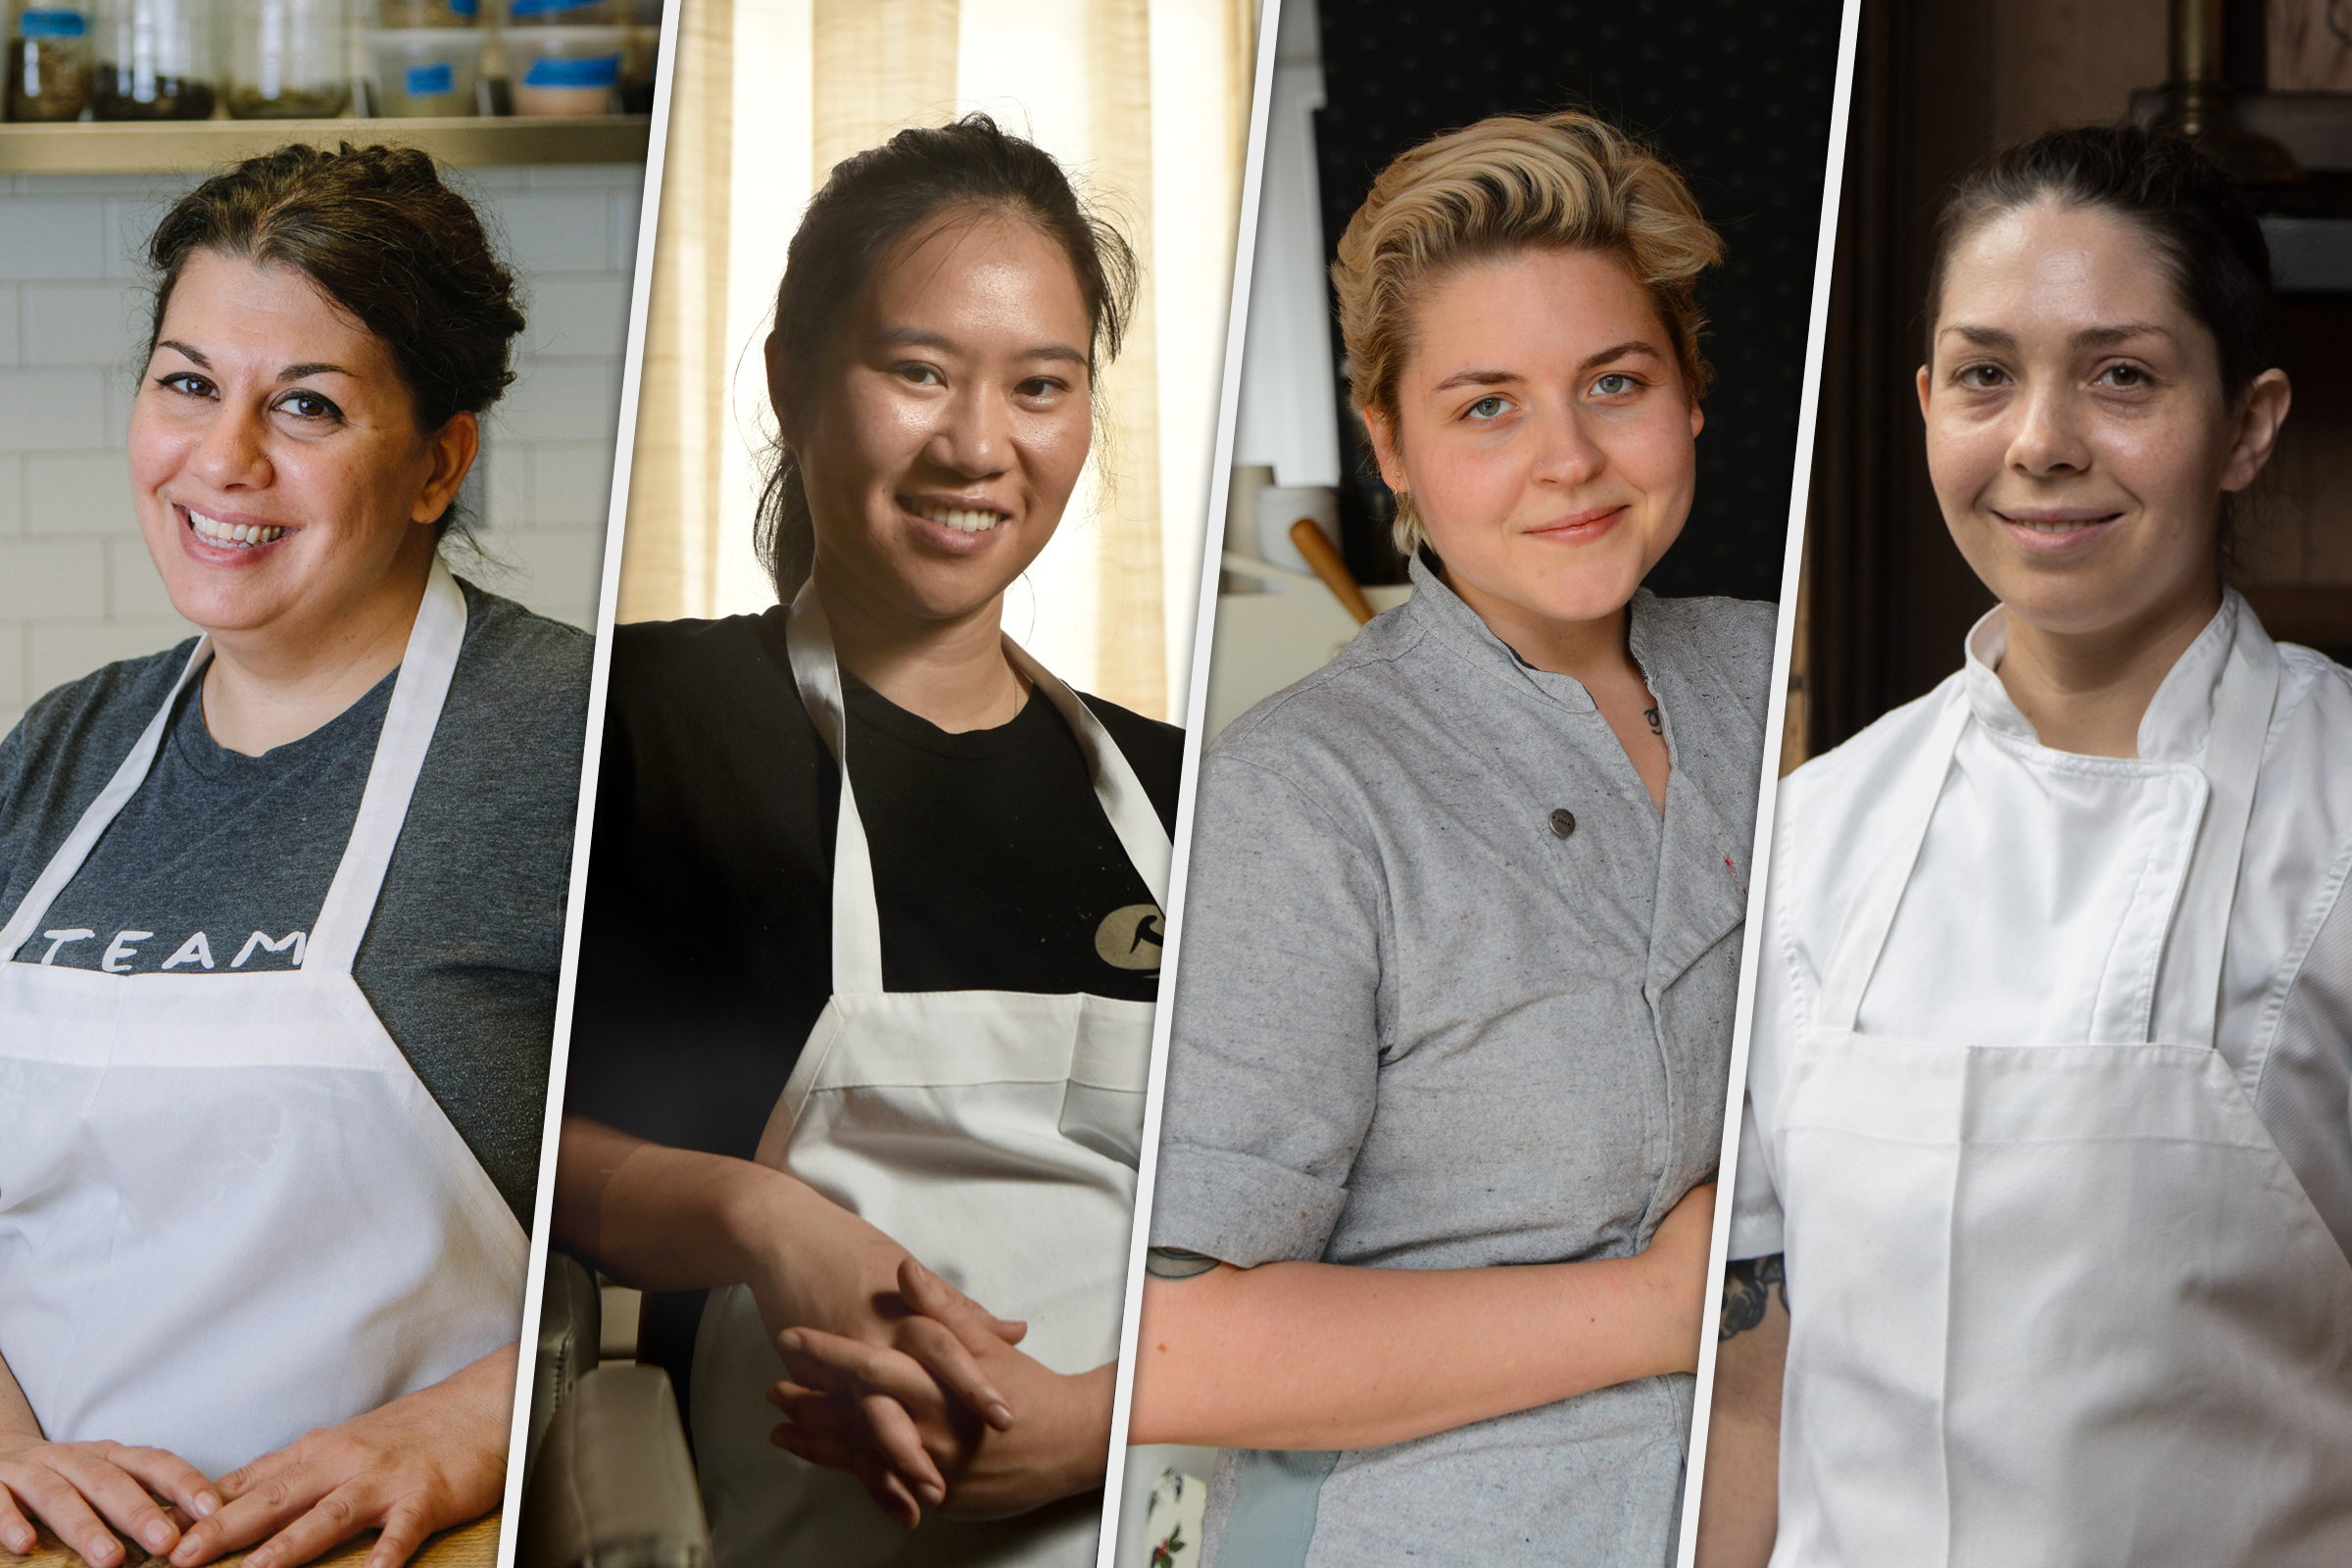 Chefs for Food package From left, Jessica George, executive sous chef at Legume in Oakland; Lily Tran, executive chef at Soba in Shadyside; Csilla Thackray, executive chef at The Vandal in Lawrenceville; and Bethany Zozula, executive chef at Whitfield at the Ace Hotel in East Liberty.